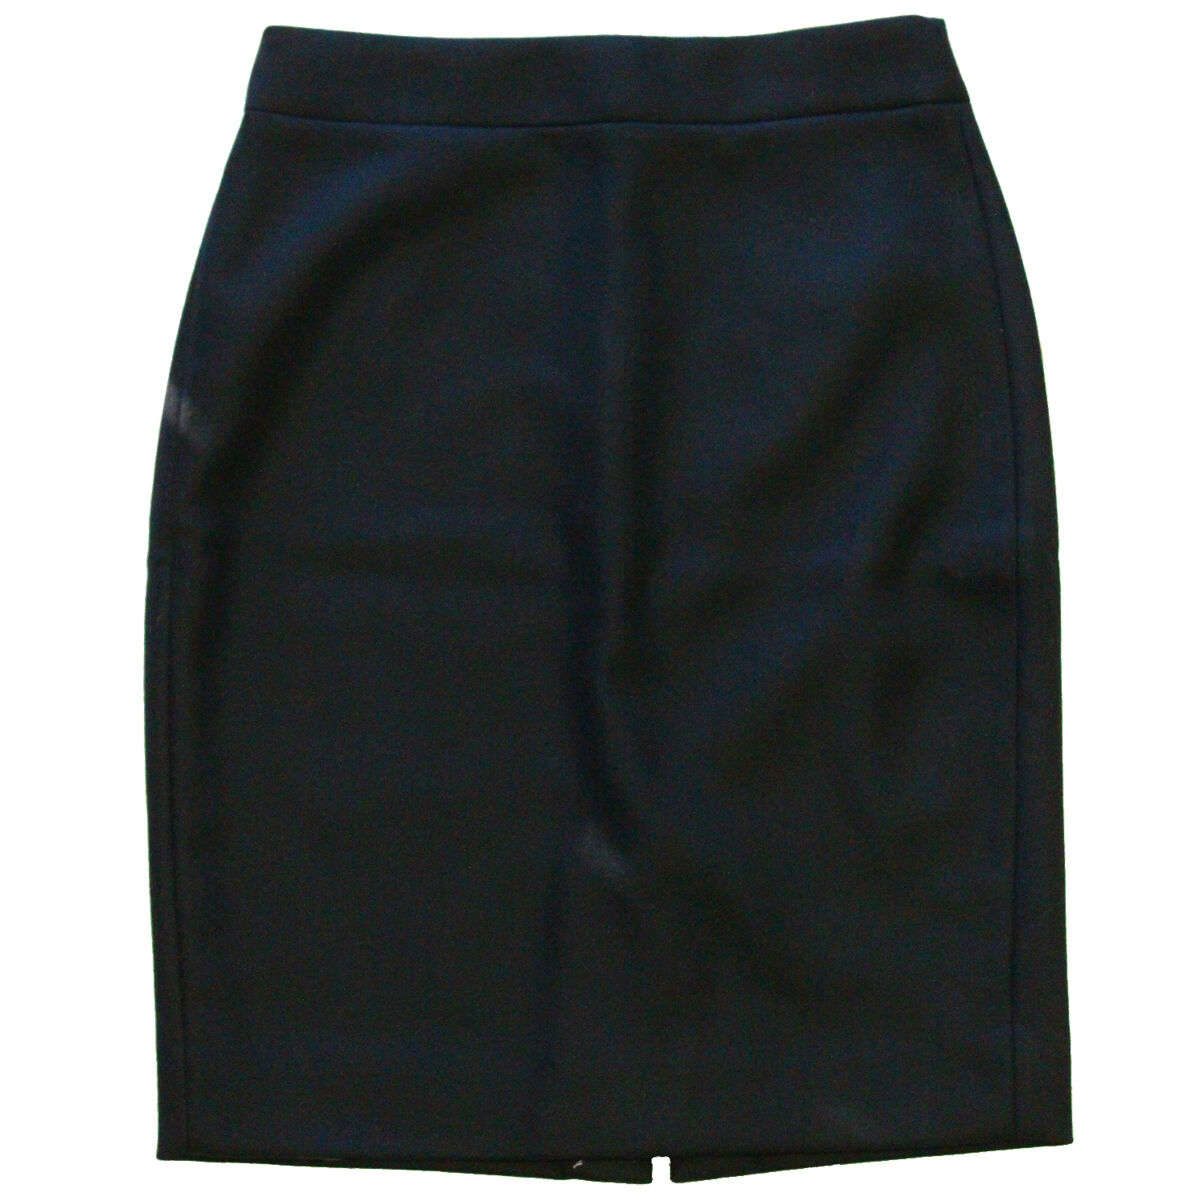 J CREW PETITE NO. 2 PENCIL SKIRT IN DOUBLE-SERGE WOOL NWT